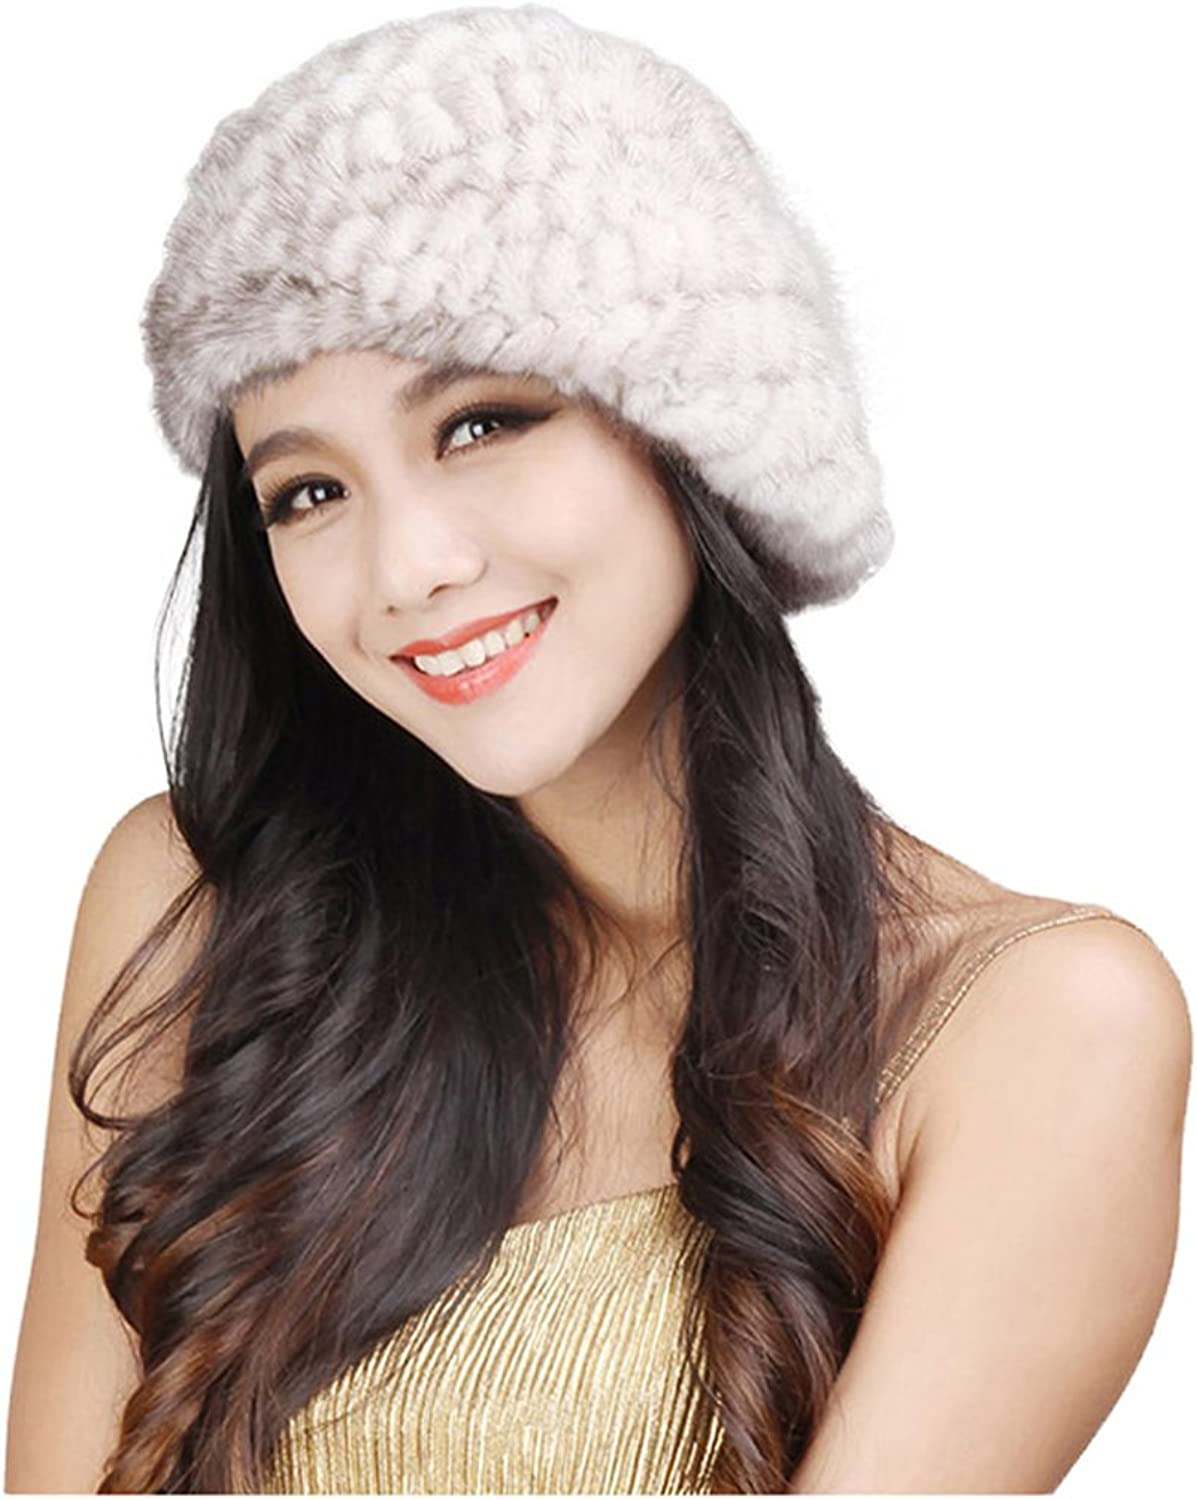 Fur Story 14618 Women's Knitted Real Mink Fur Beret Hat